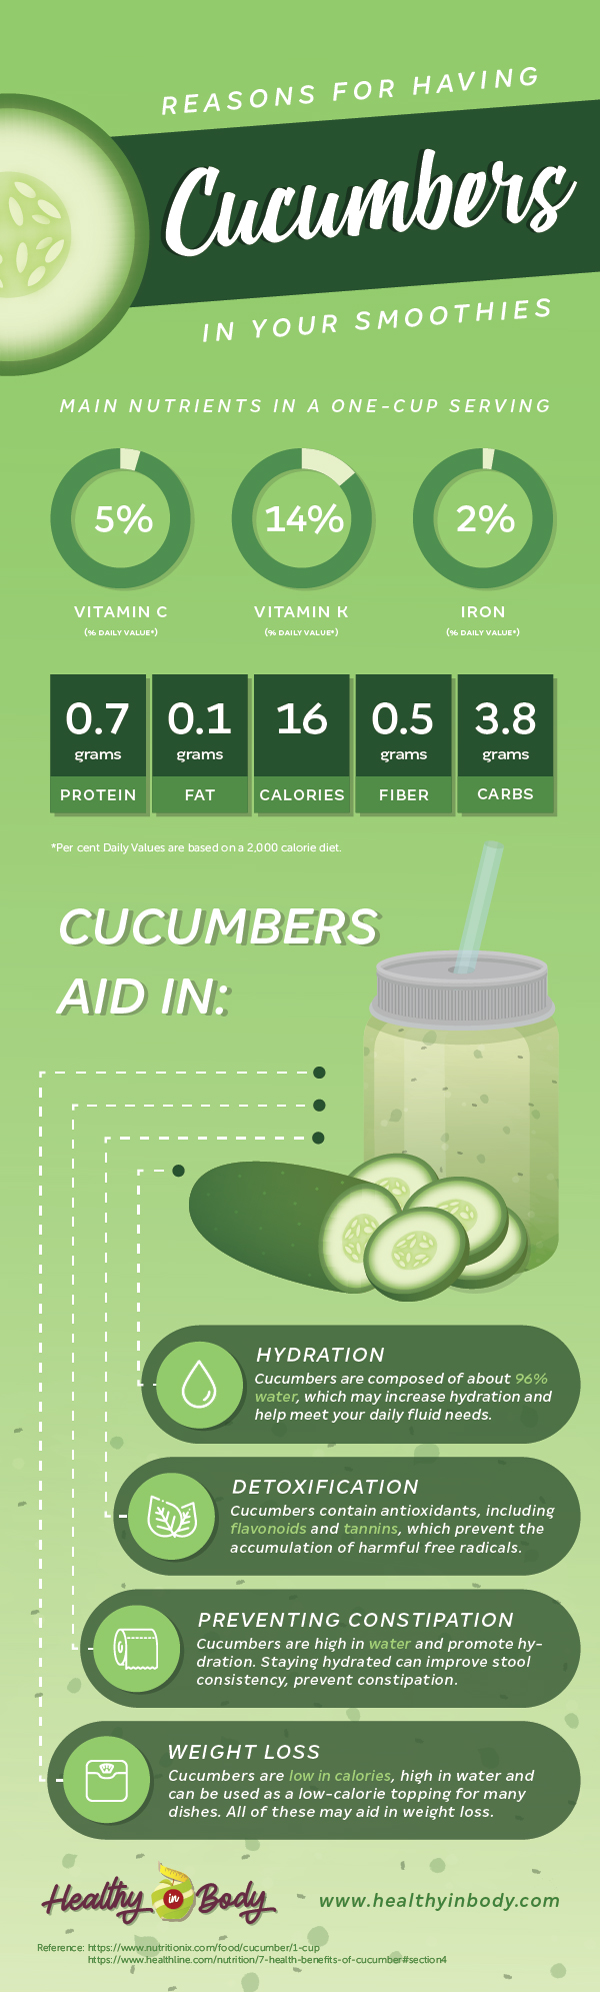 Inforgraphics about the nutrition facts and health benefits of cucumbers